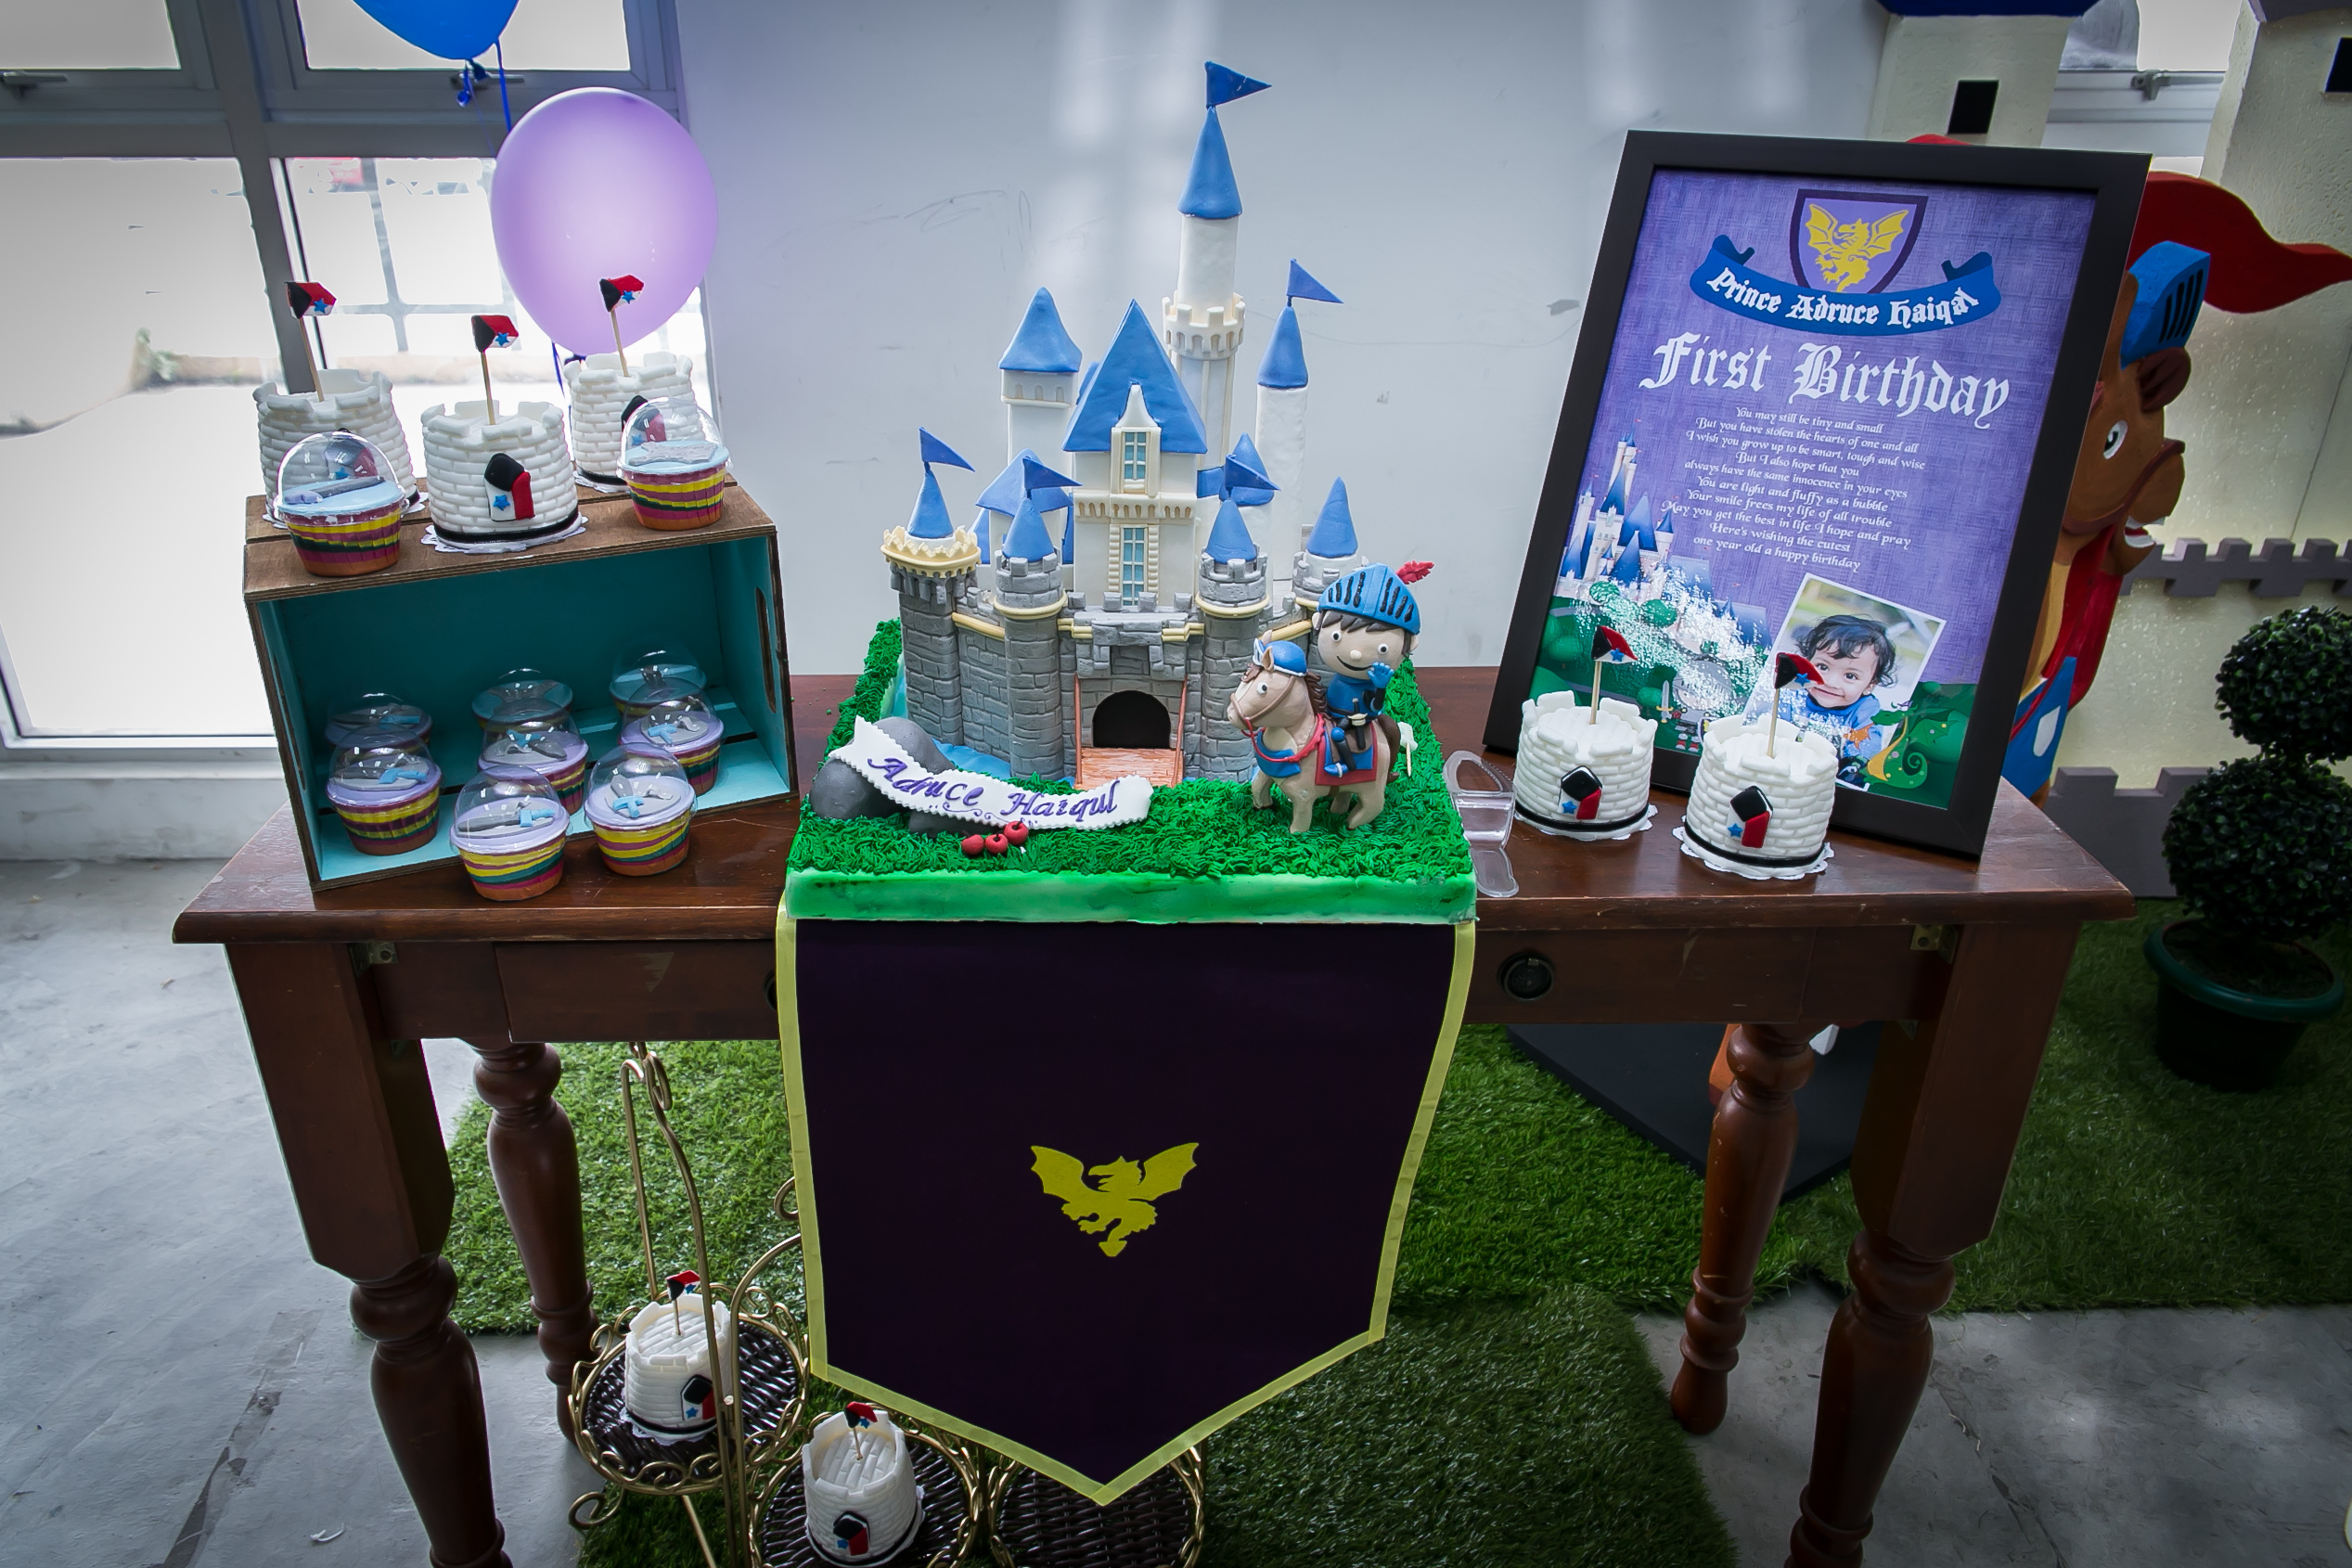 Theme Medieval 1st Birthday For Prince Adruce Haiqal